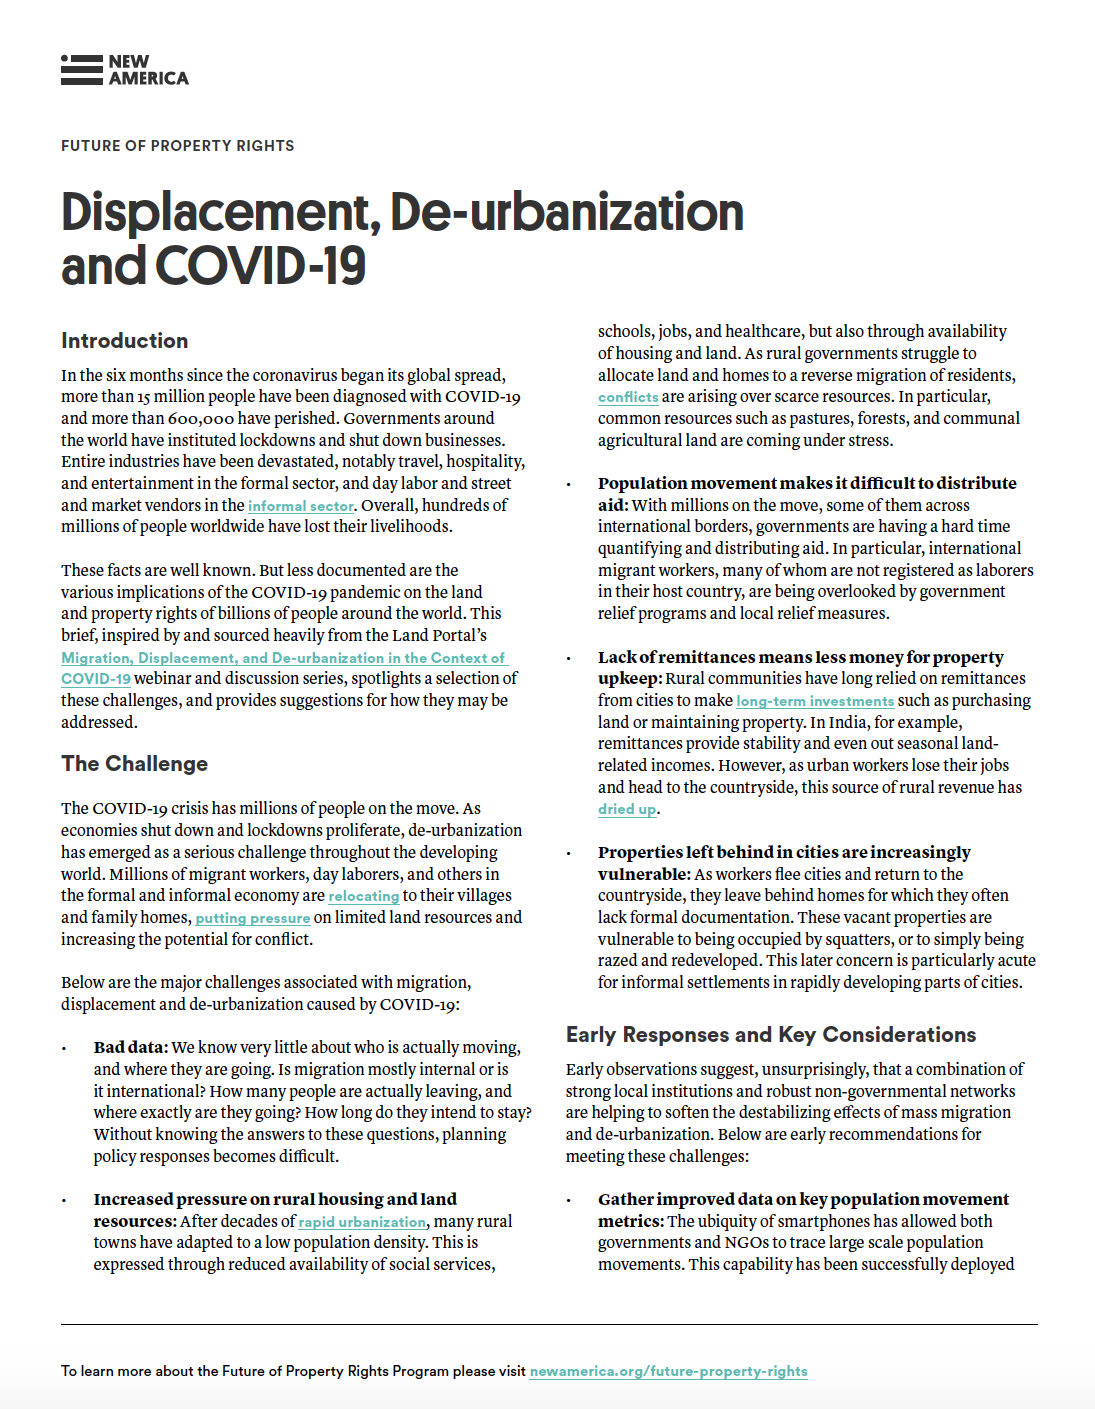 Displacement, De-urbanization, and COVID-19